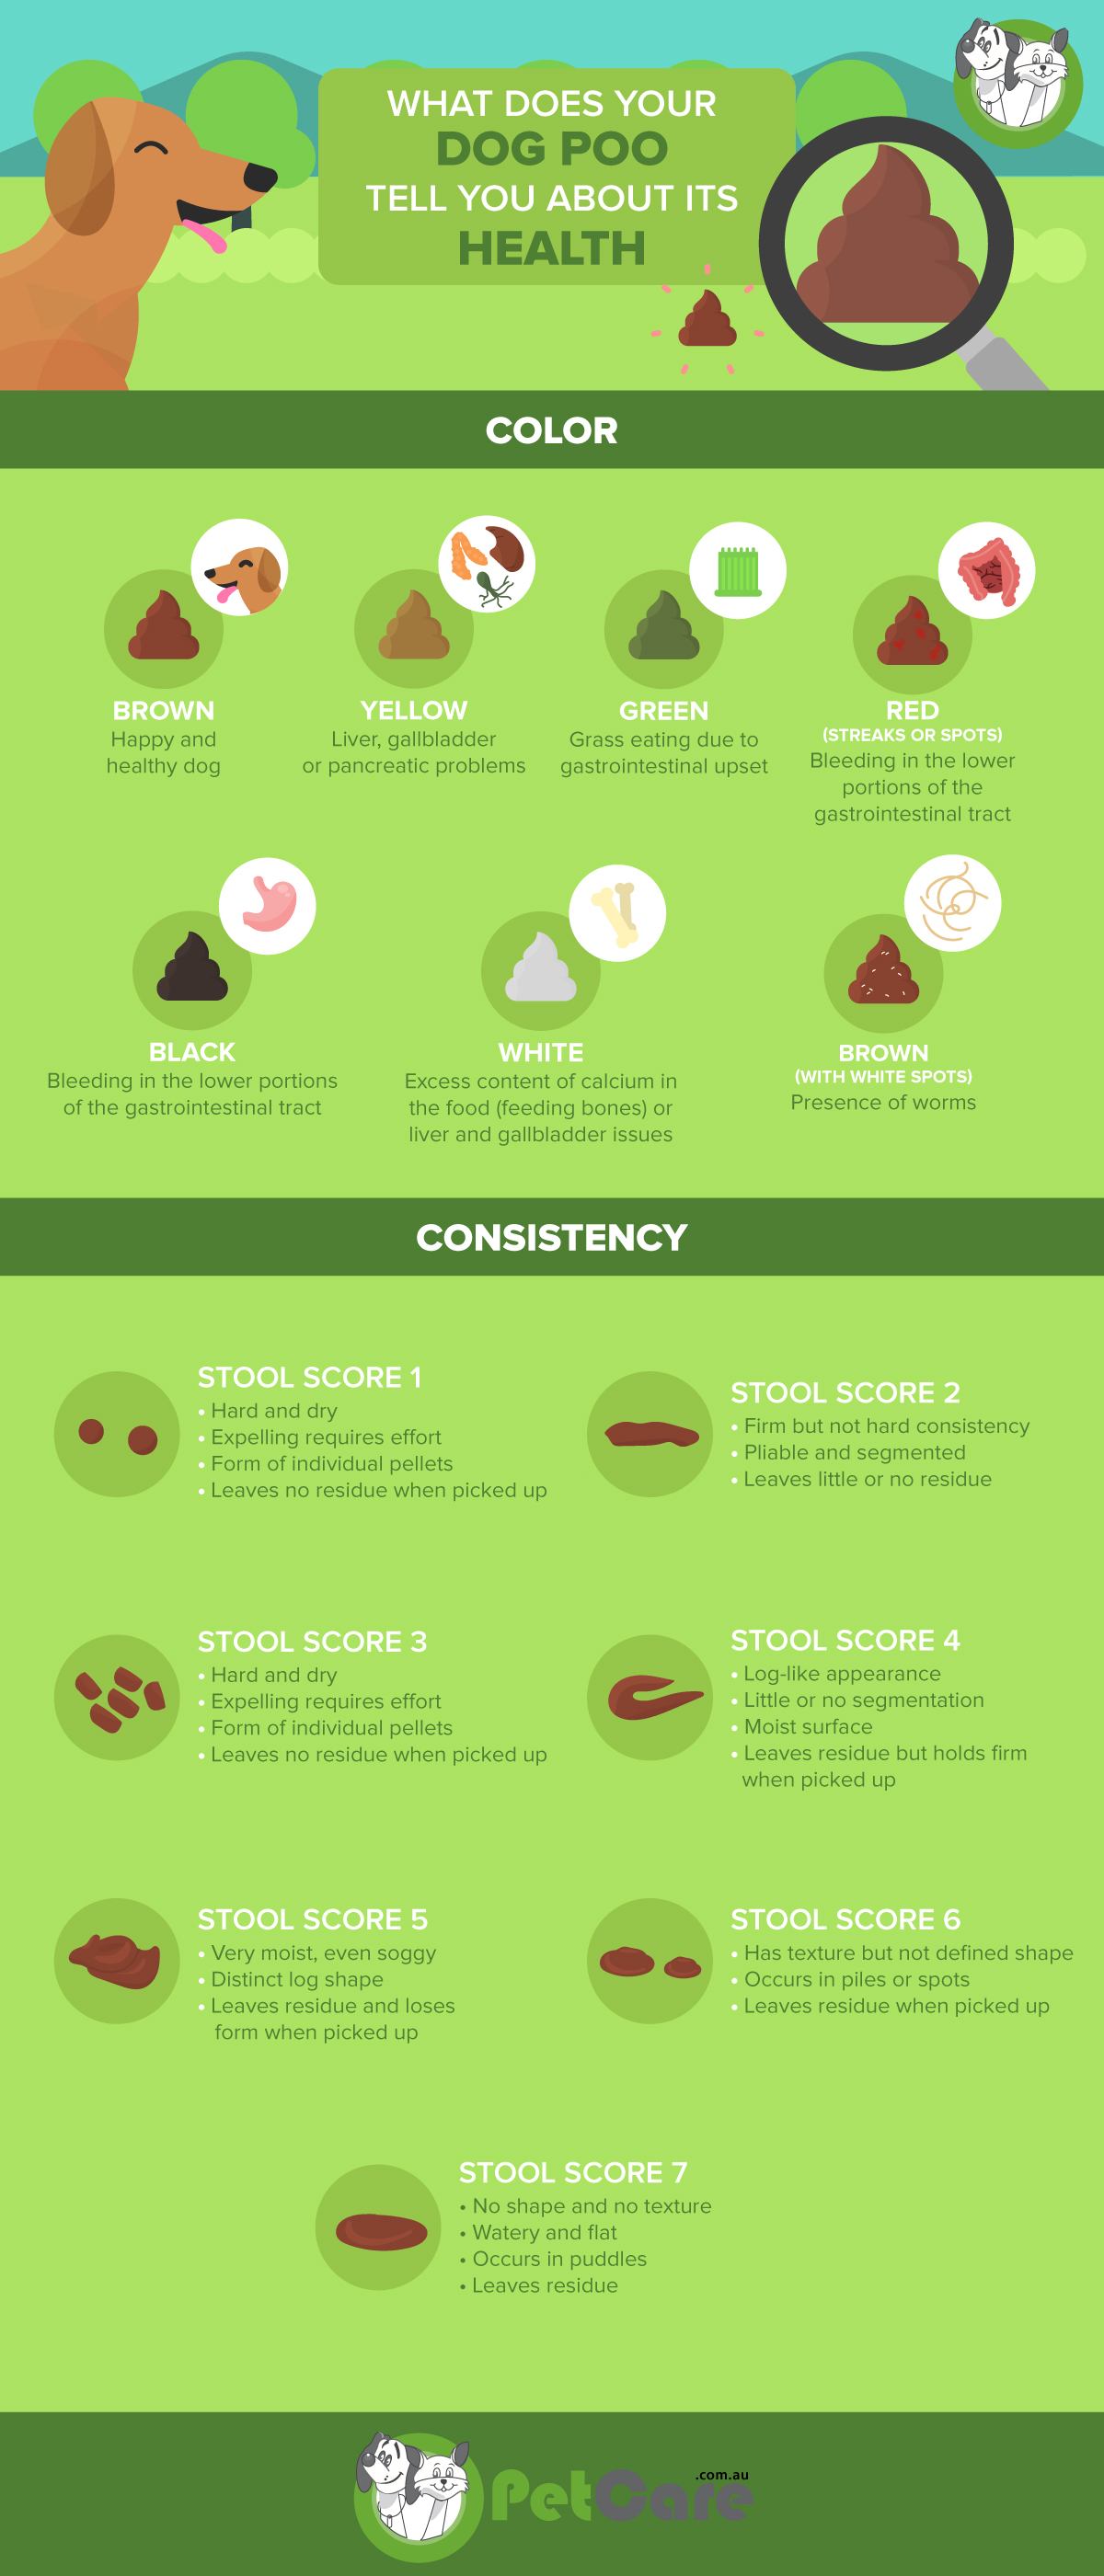 Dog Poop colours infographic PetCare Pet insurance